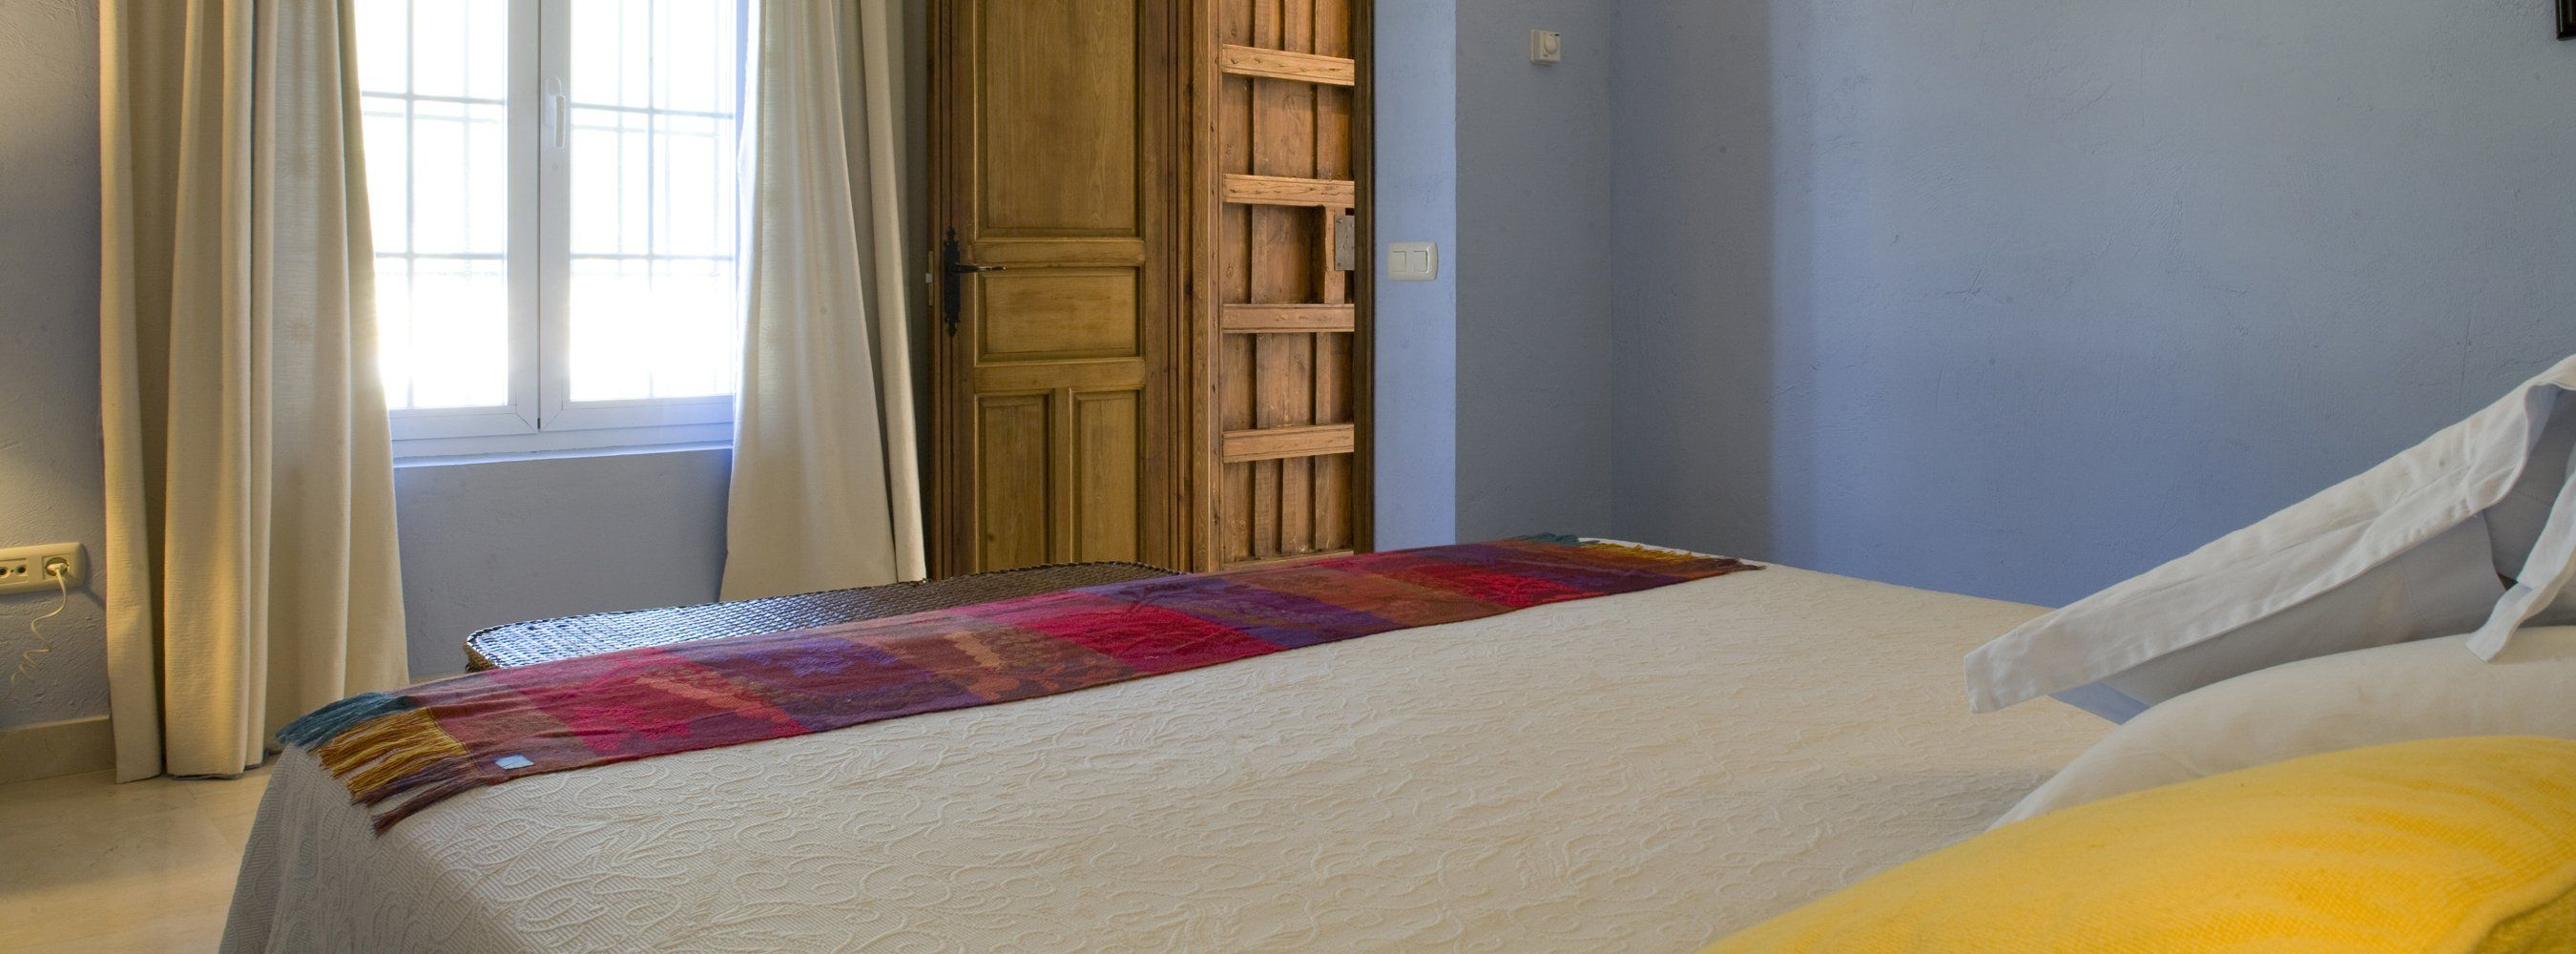 bedroom villa ronda